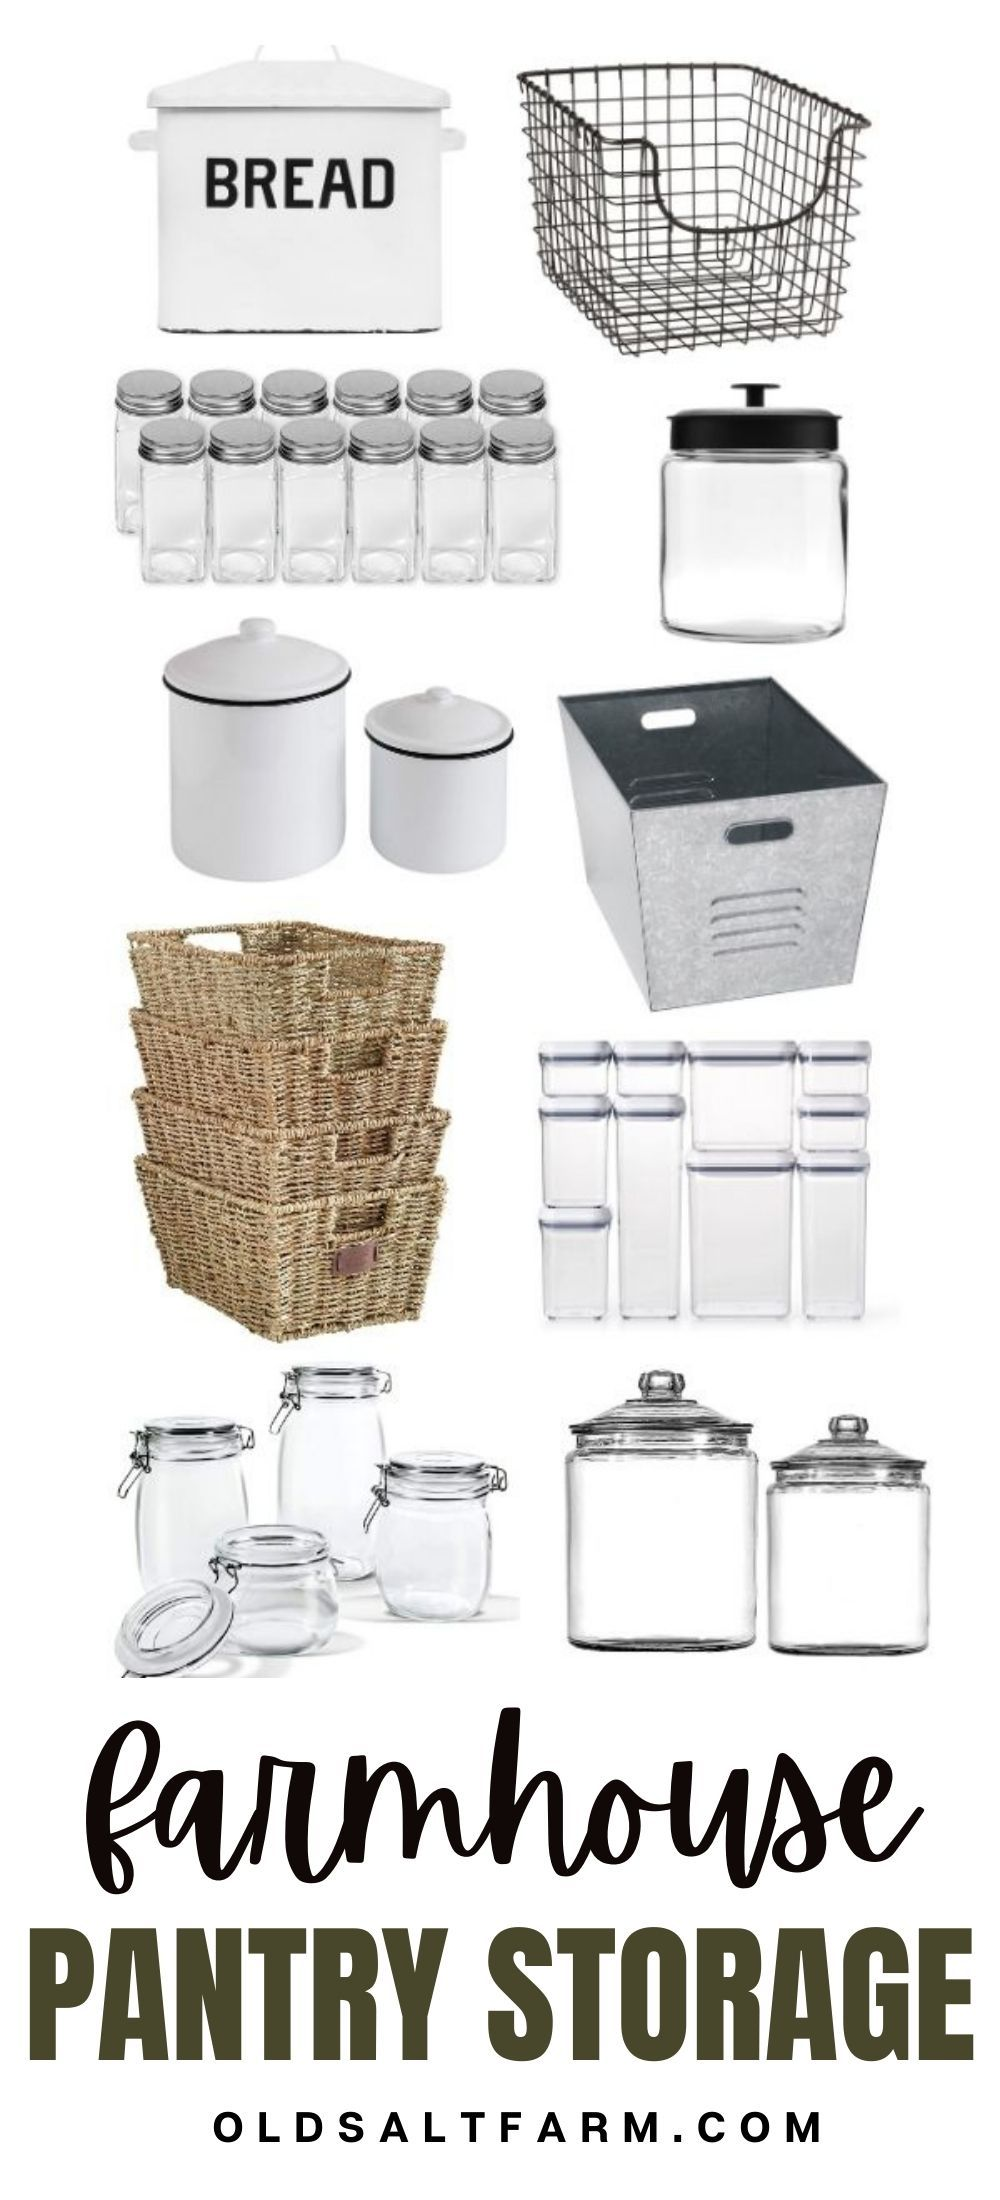 The best Farmhouse Pantry Storage Containers...baskets, bins, and jars. Perfect for keeping your pantry organized!